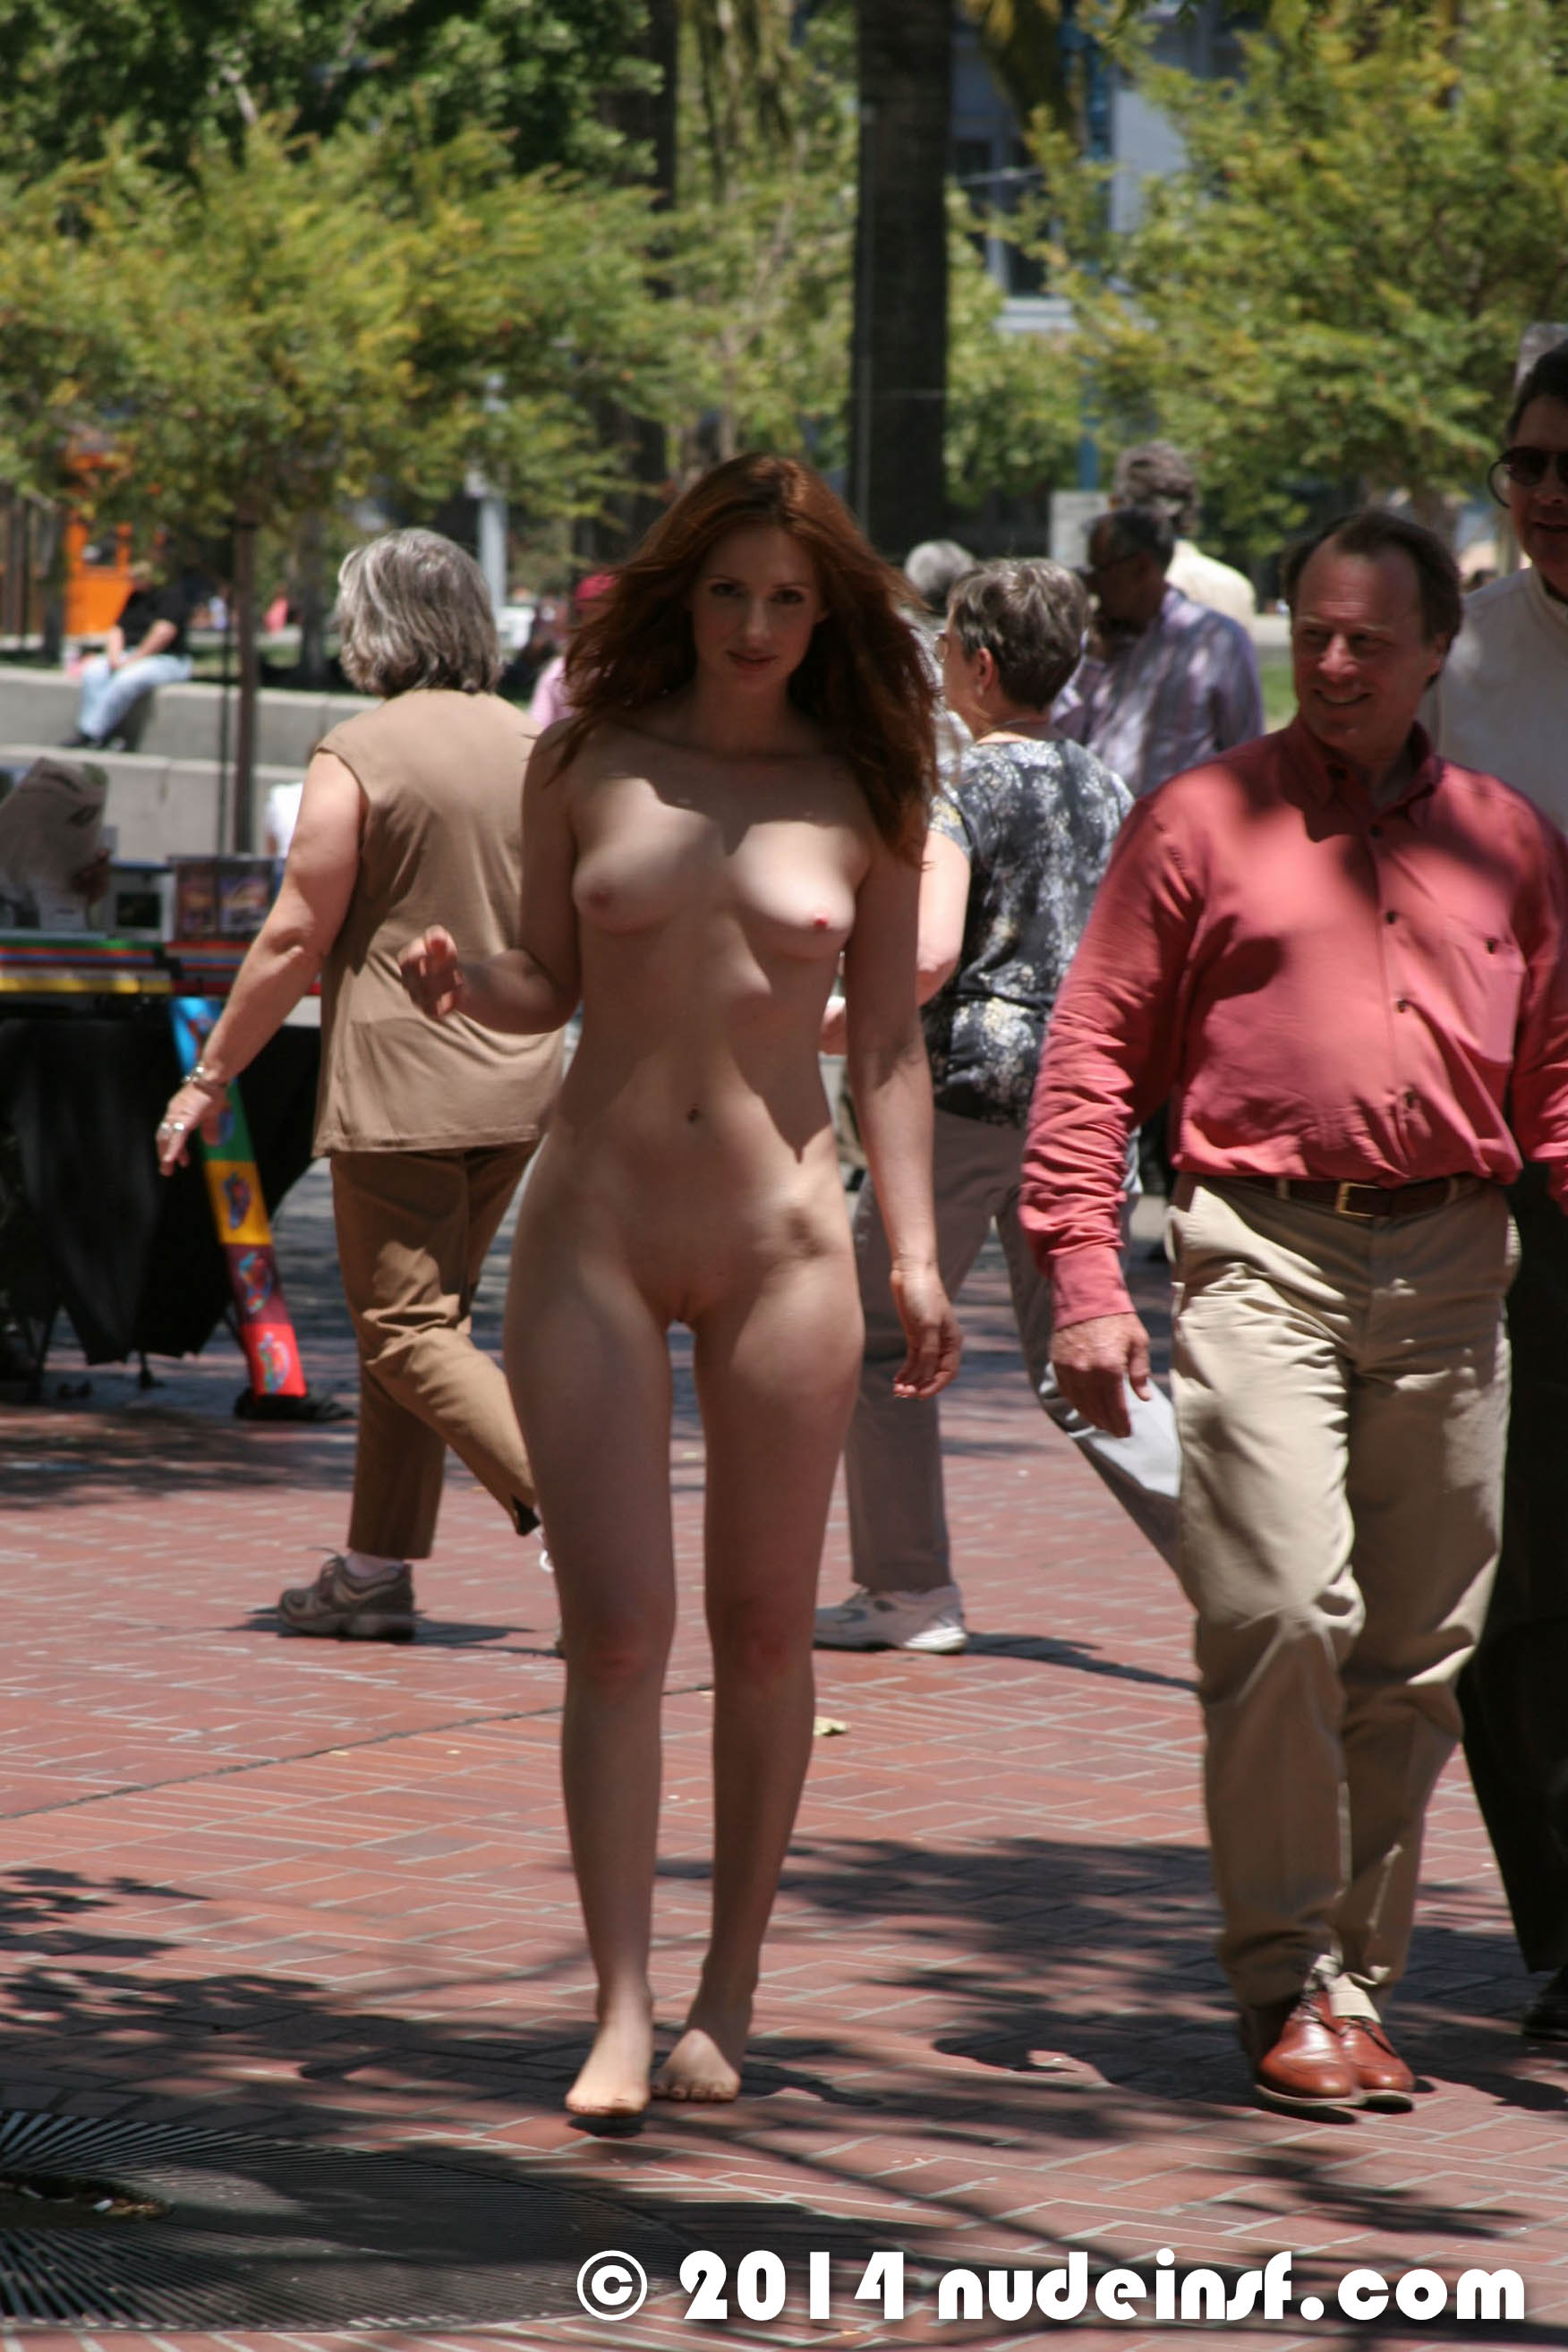 Girl walks the public streets totally naked